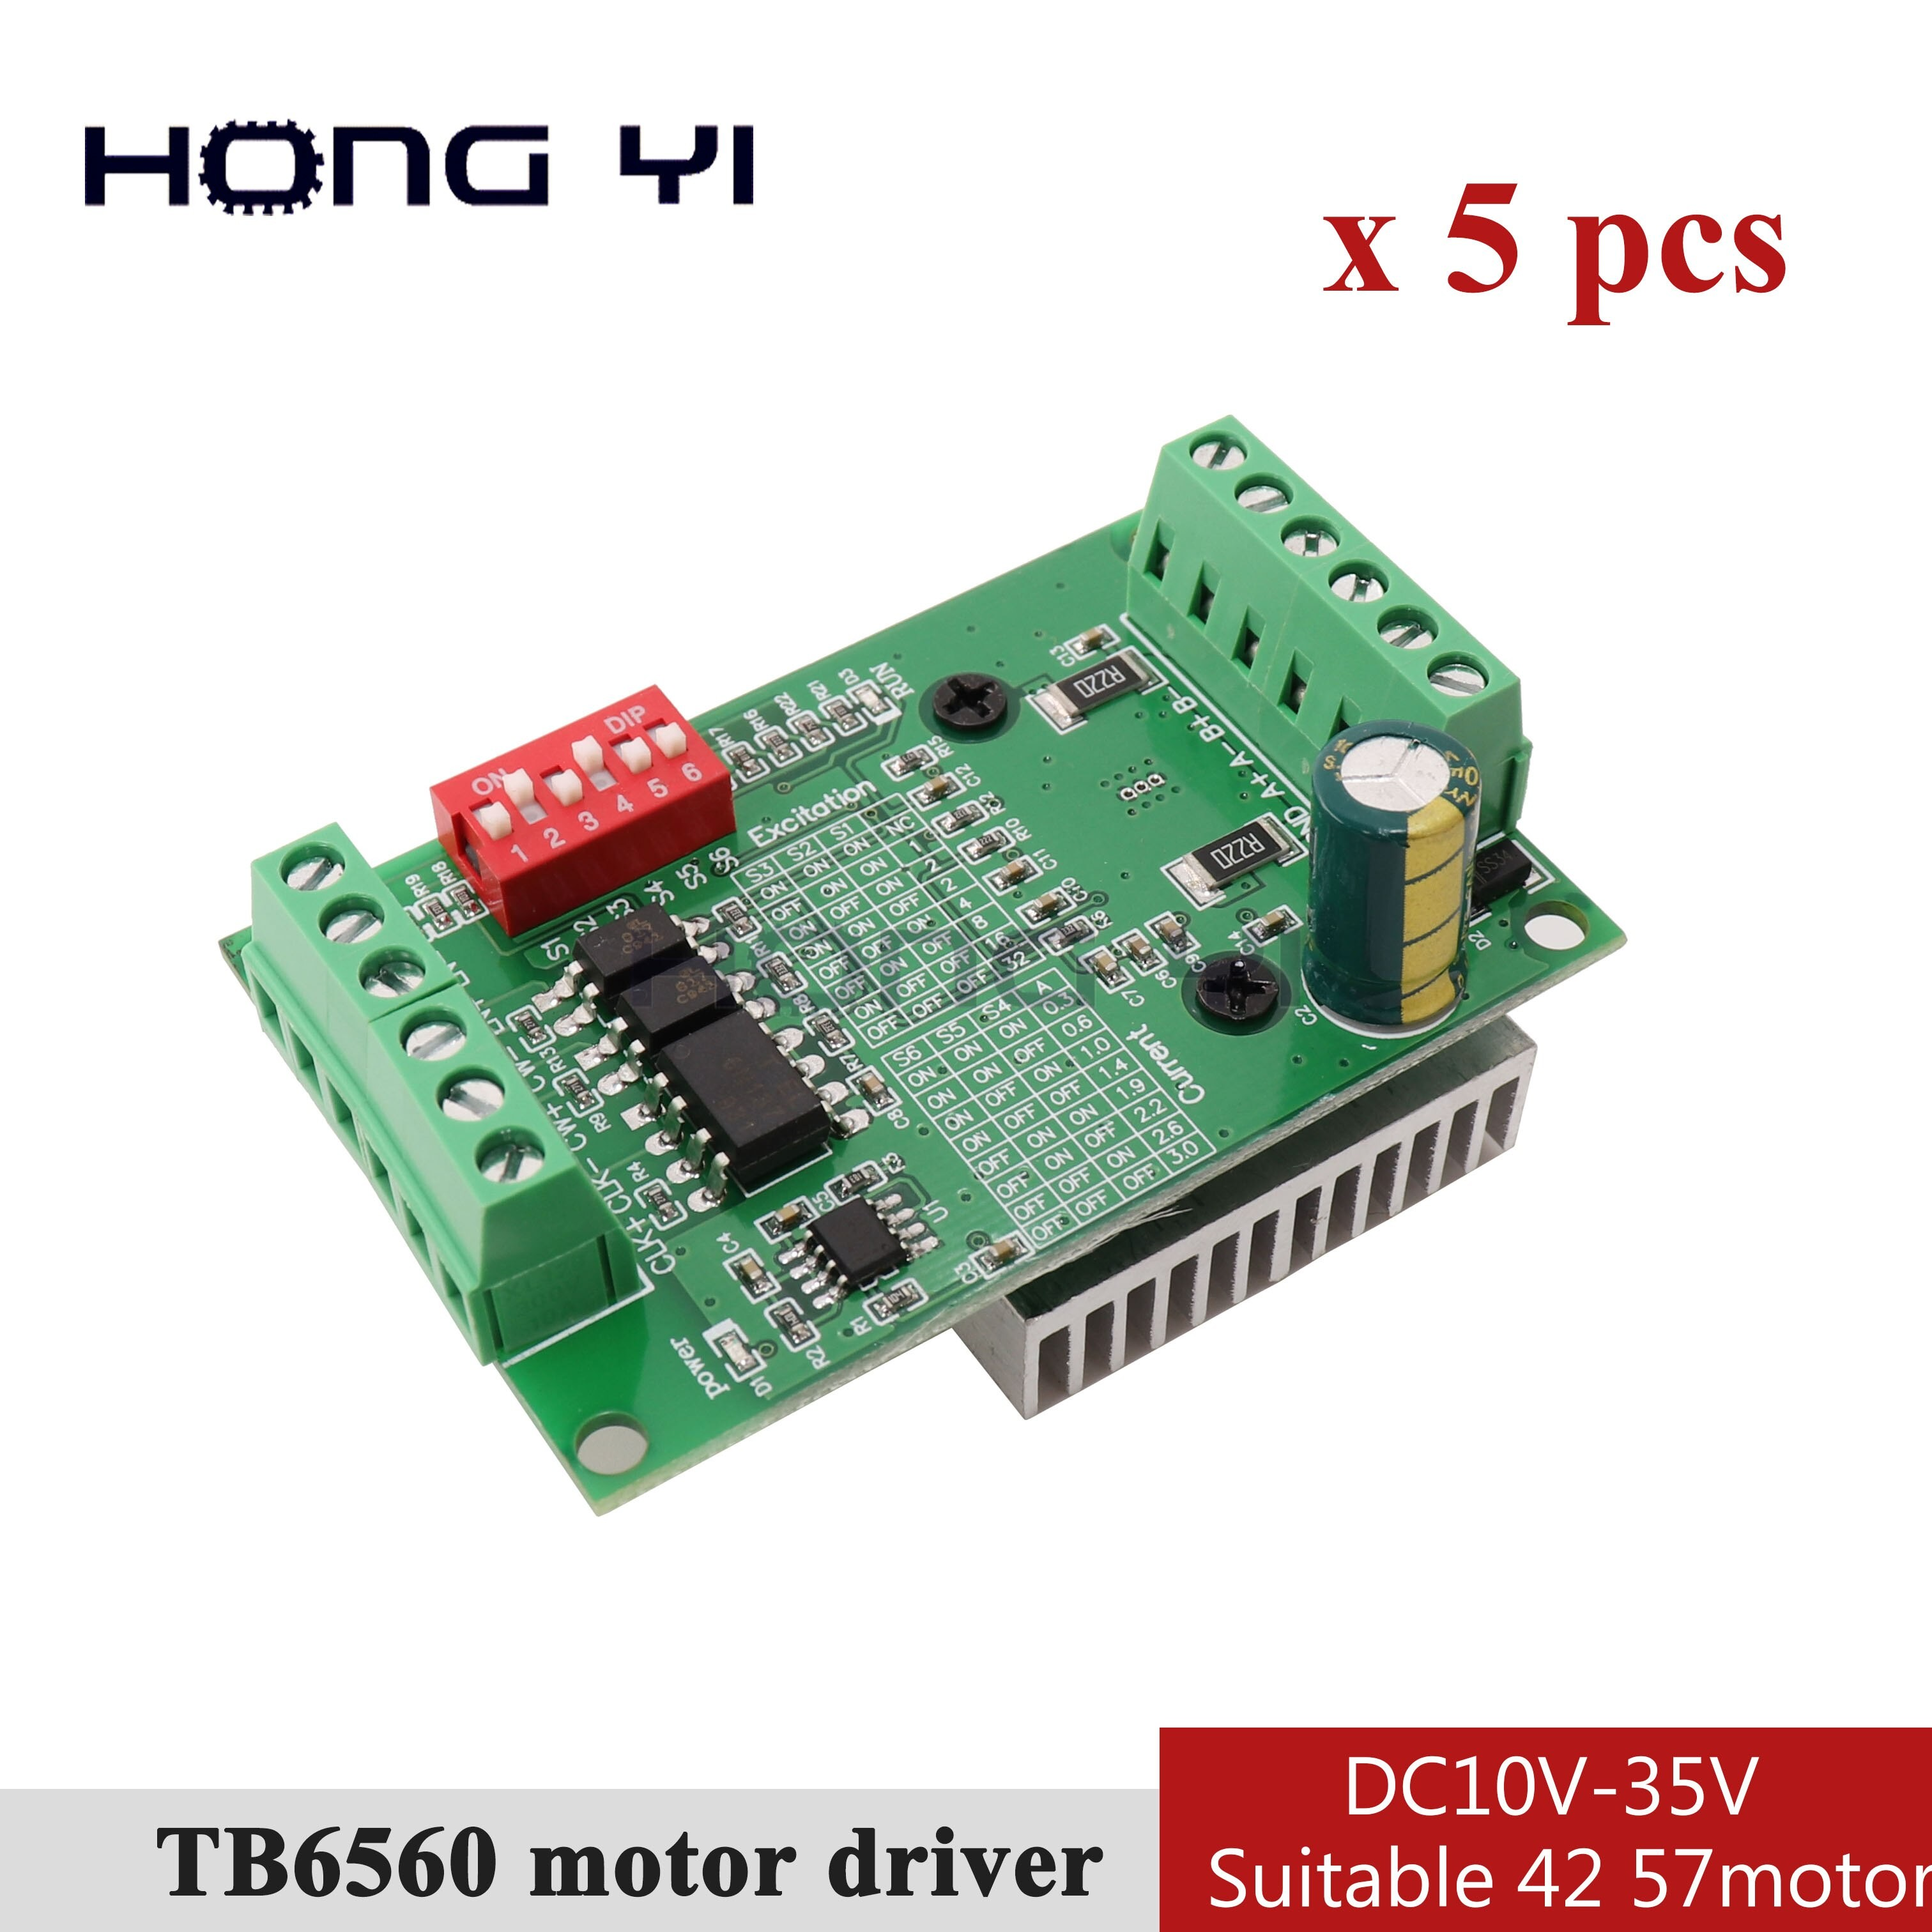 Wireing Diagram 4 Axis Tb6560 Driver Board 5pcs Tb6560 3a Stepper Motor Drives Cnc Stepper Motor Board Single Axis Controller 10 Files Motor Controller Board New Tb6560ahq Of Wireing Diagram 4 Axis Tb6560 Driver Board